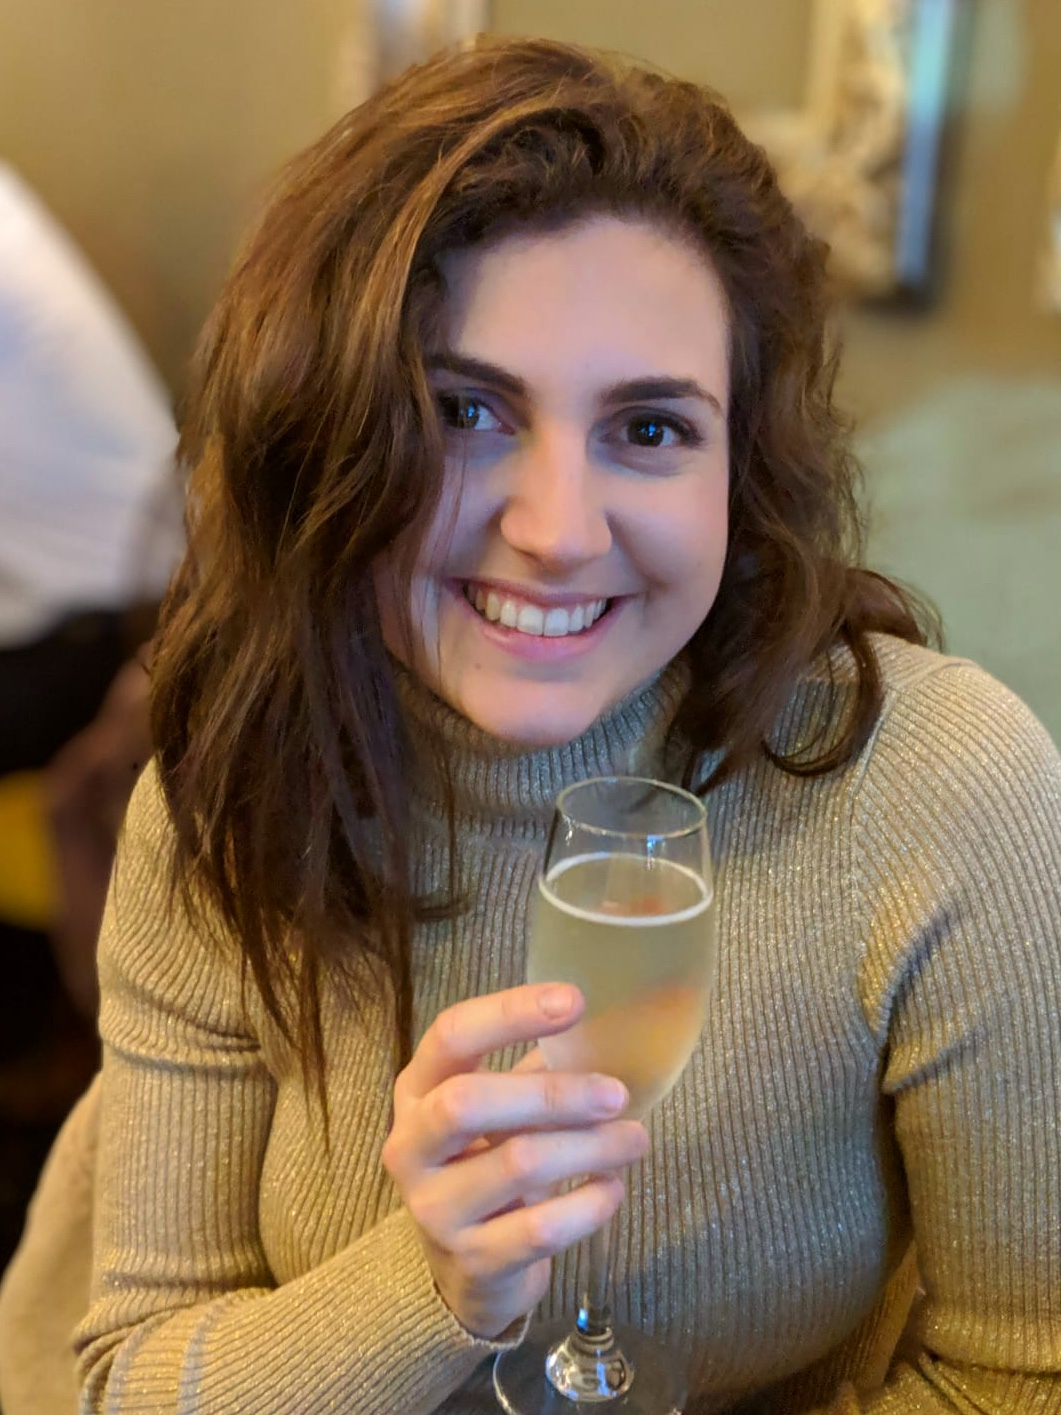 Nell holding a glass of champagne at Australasia, one of the manchester restaurants, and smiling at the camera